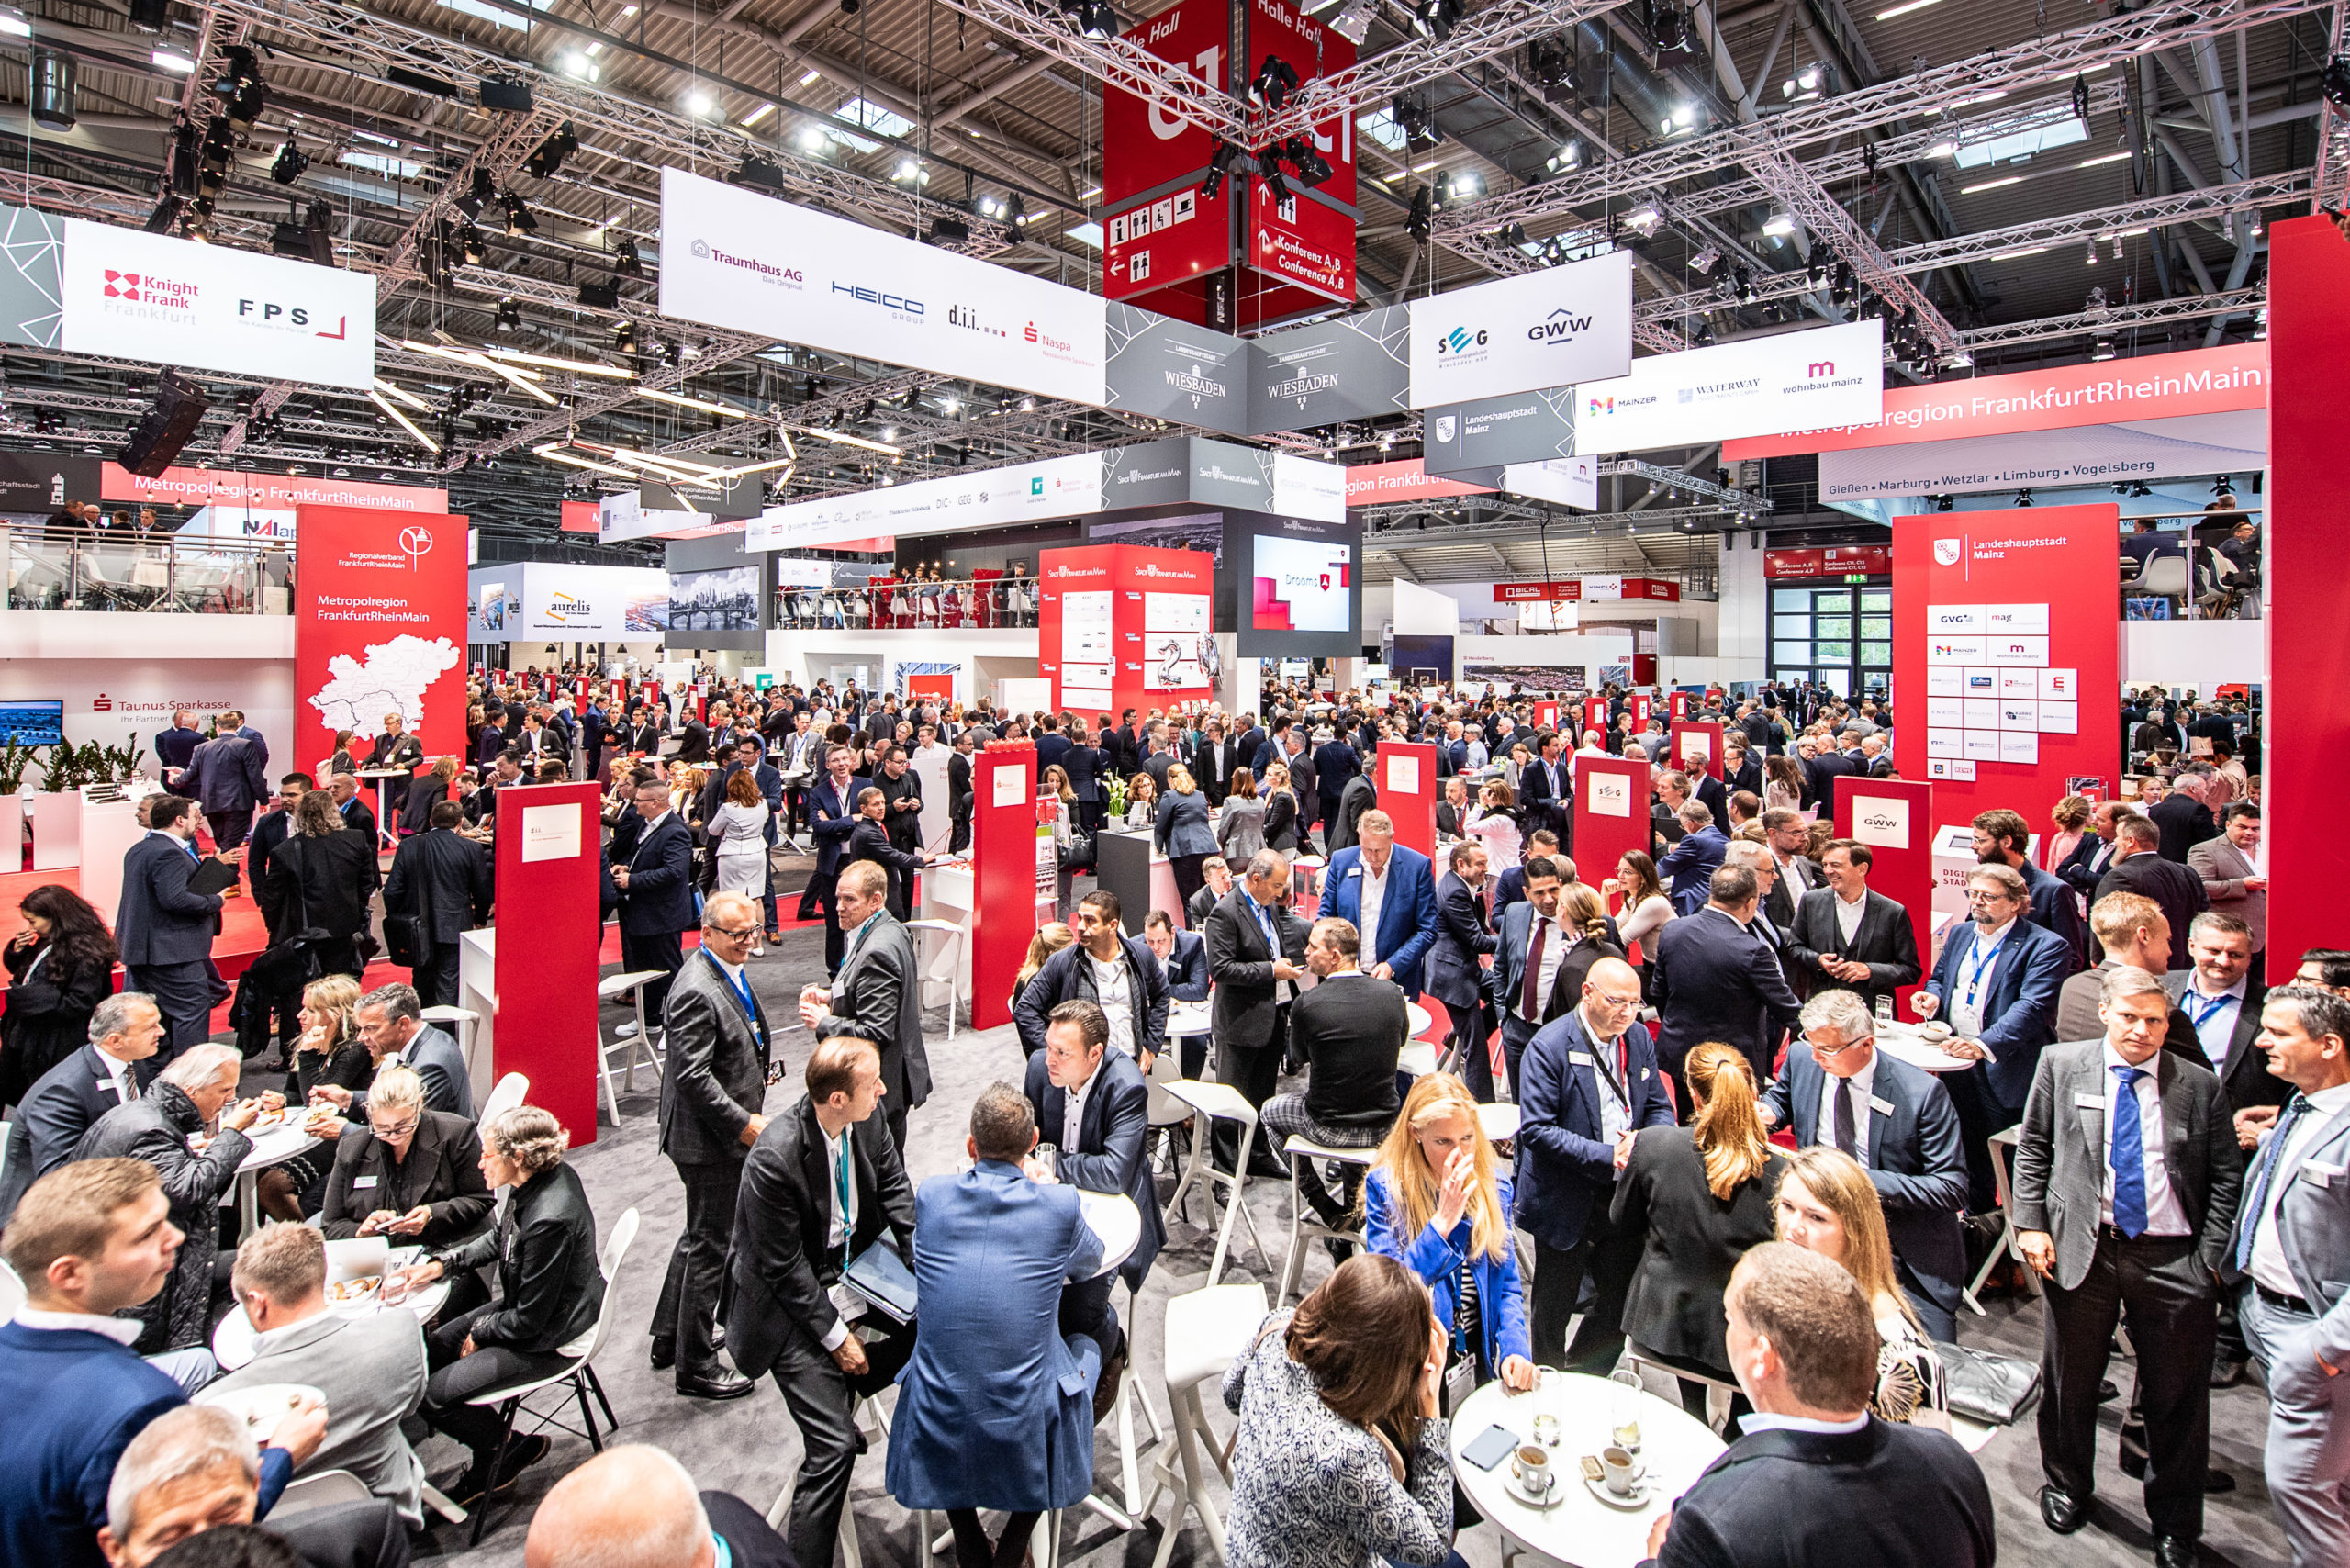 Innenaufnahme der Immobilienmesse Expo Real 2019 in München